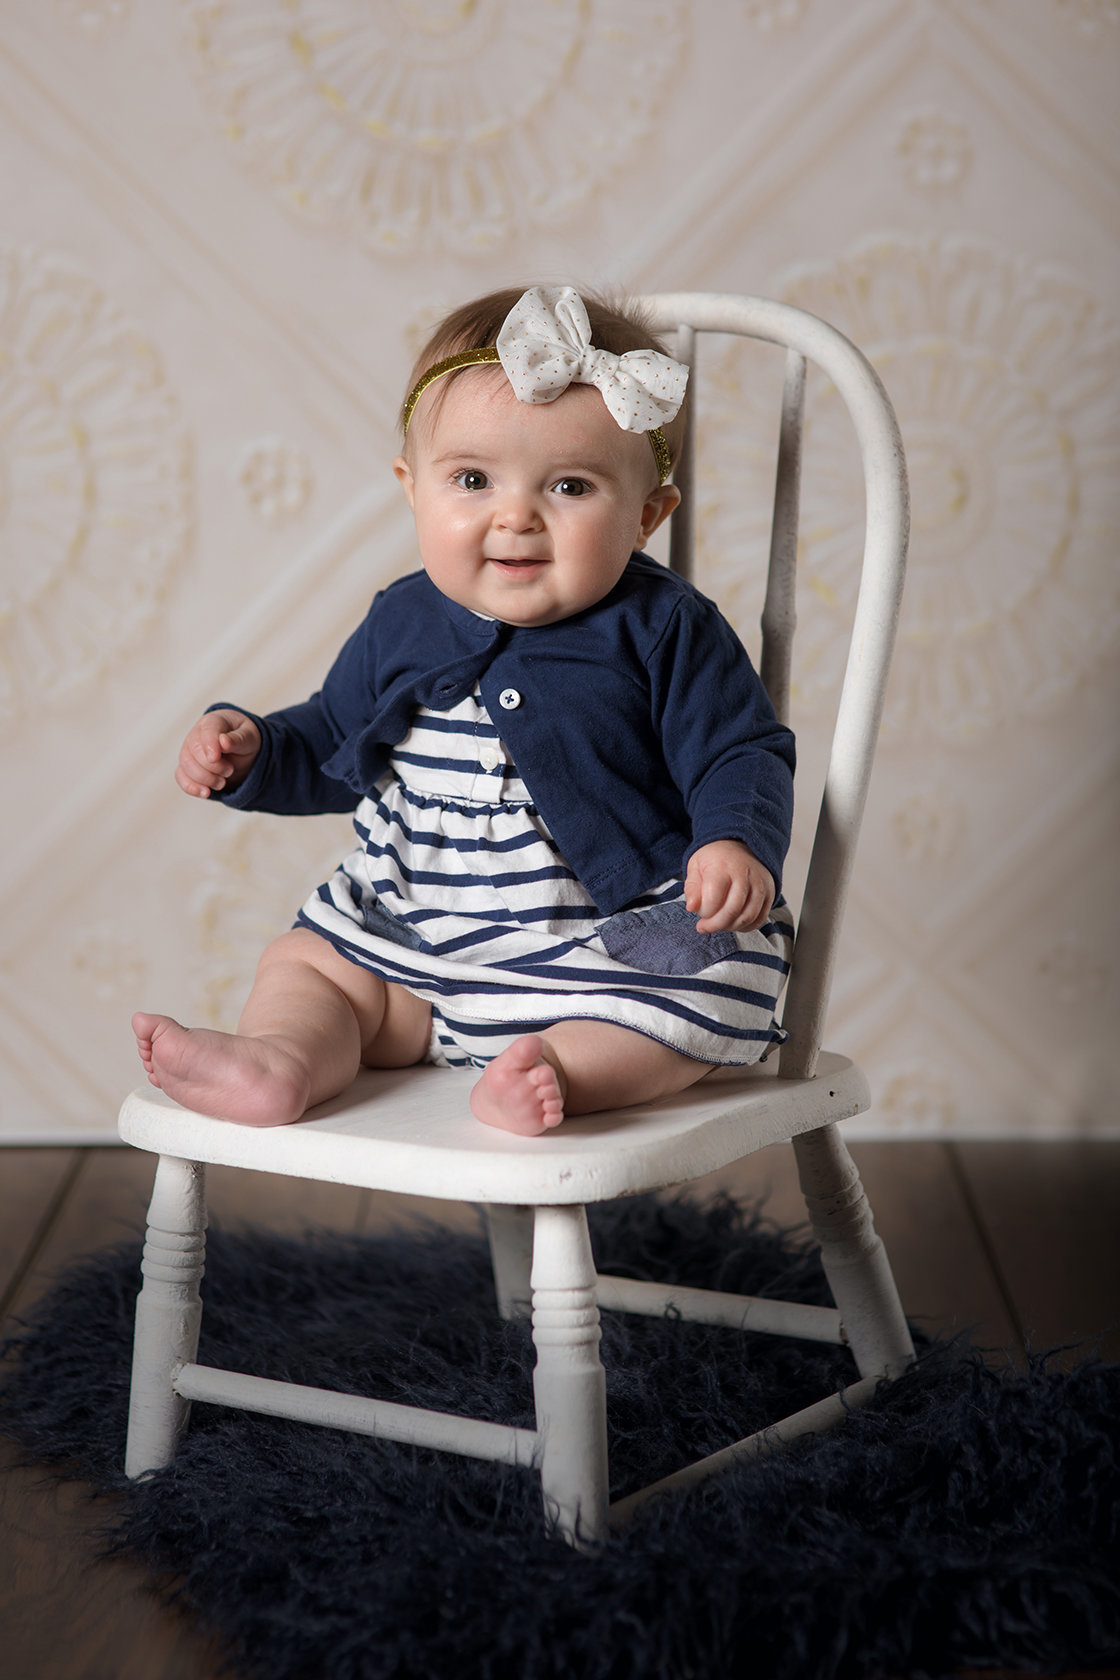 chubby baby girl sitting on chair